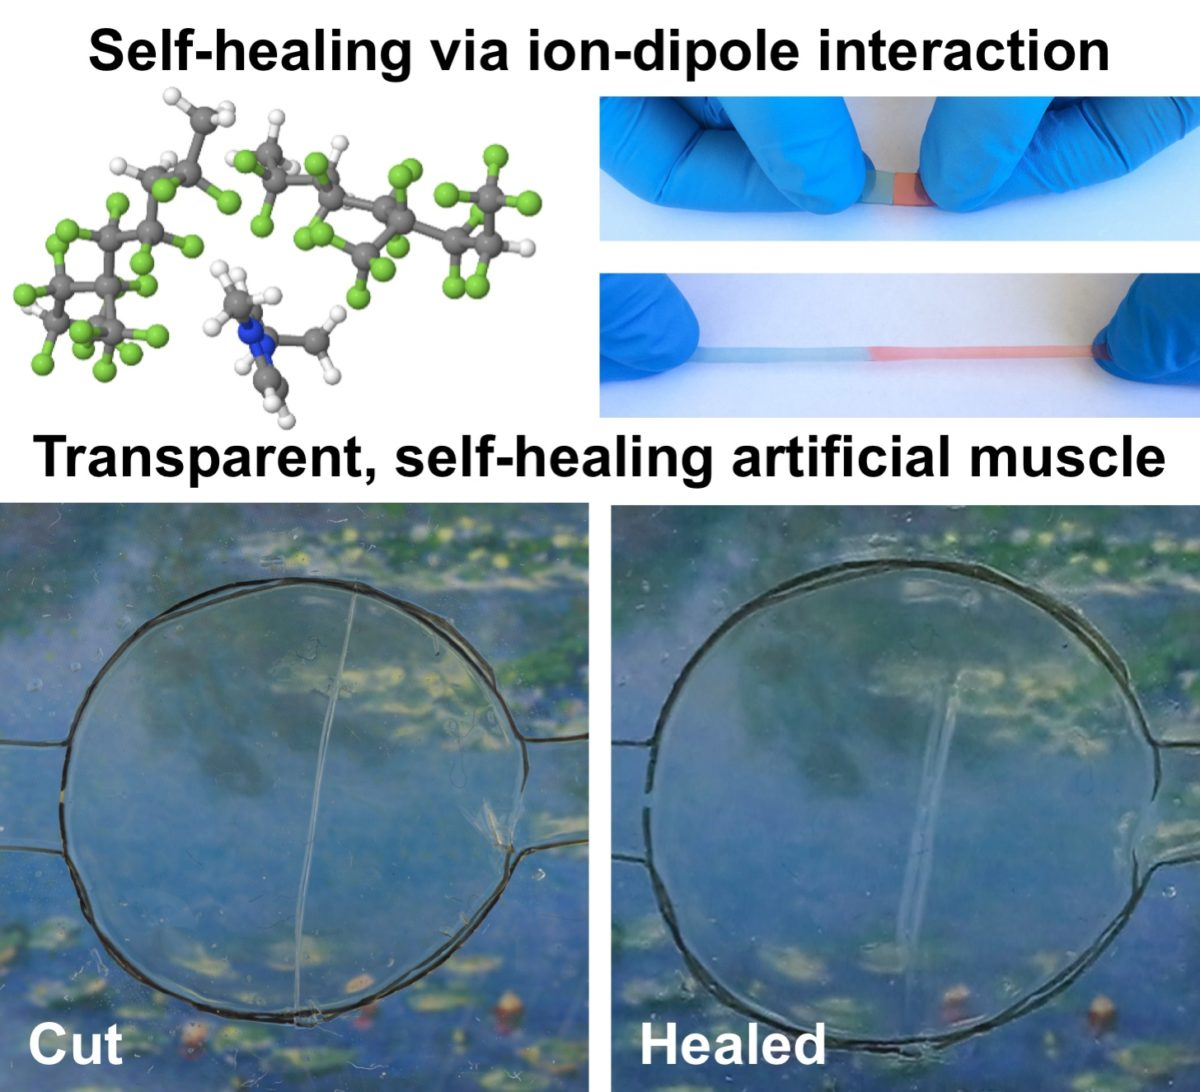 This new material self-heals like Wolverine's skin